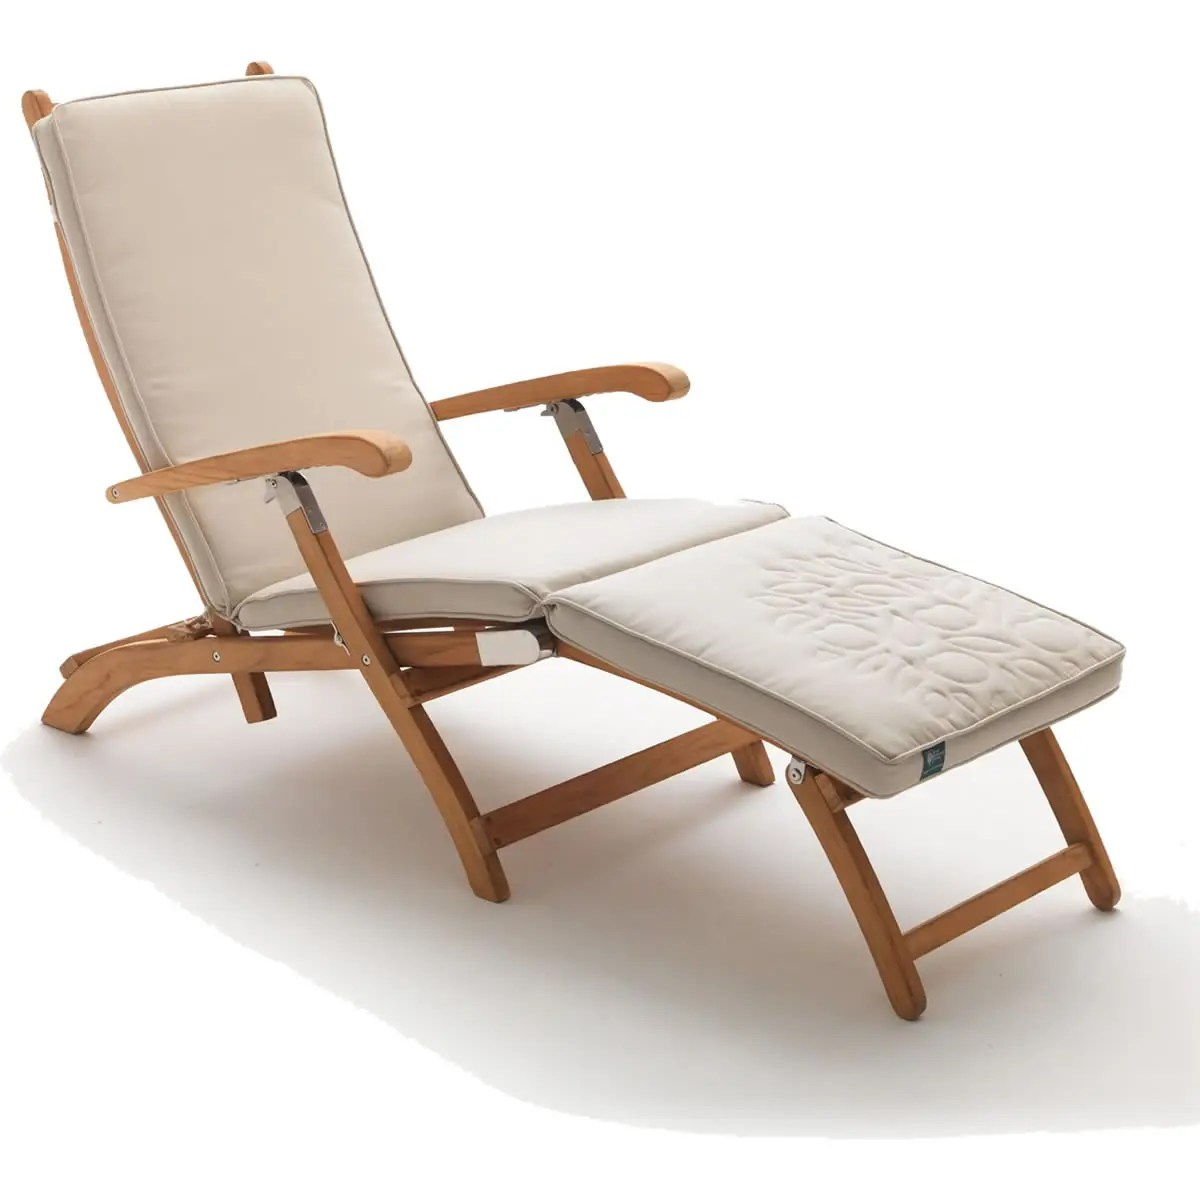 teak steamer chair striped covers dining rooms rhs wisley 0896611 8001 garden